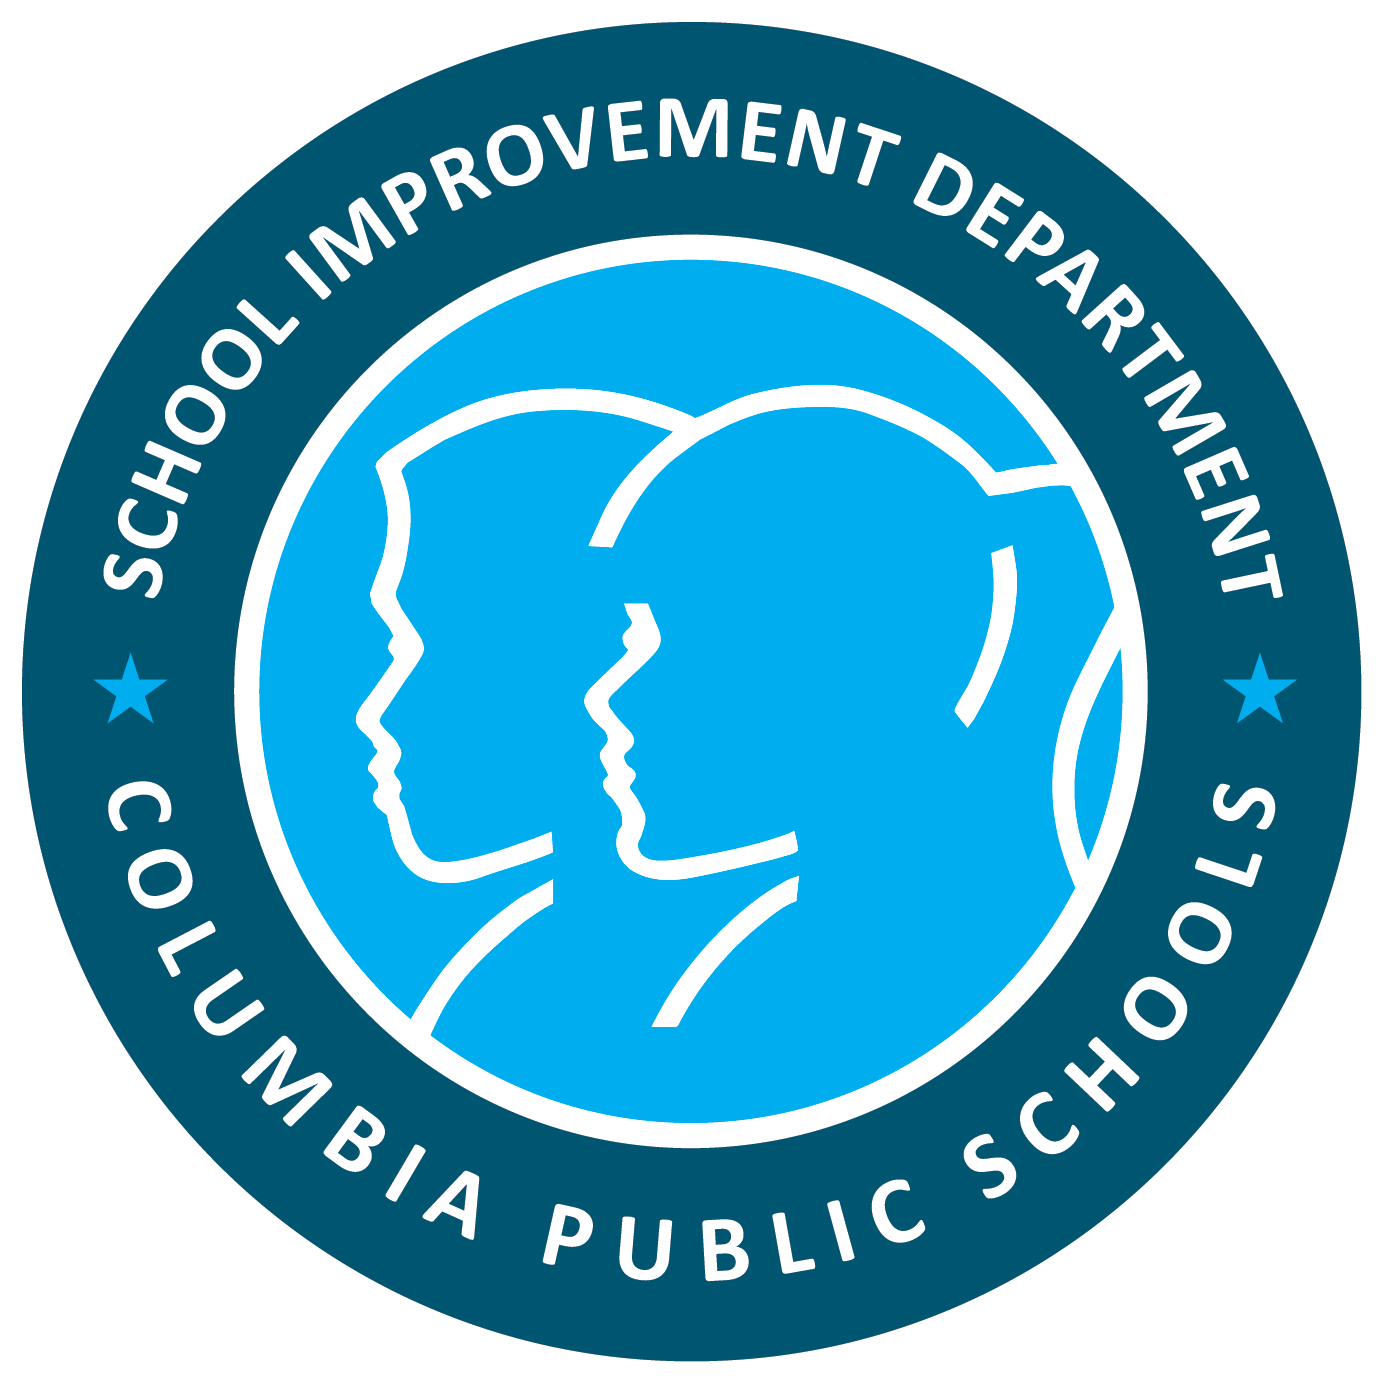 SchoolImprovementDepartmentLogo